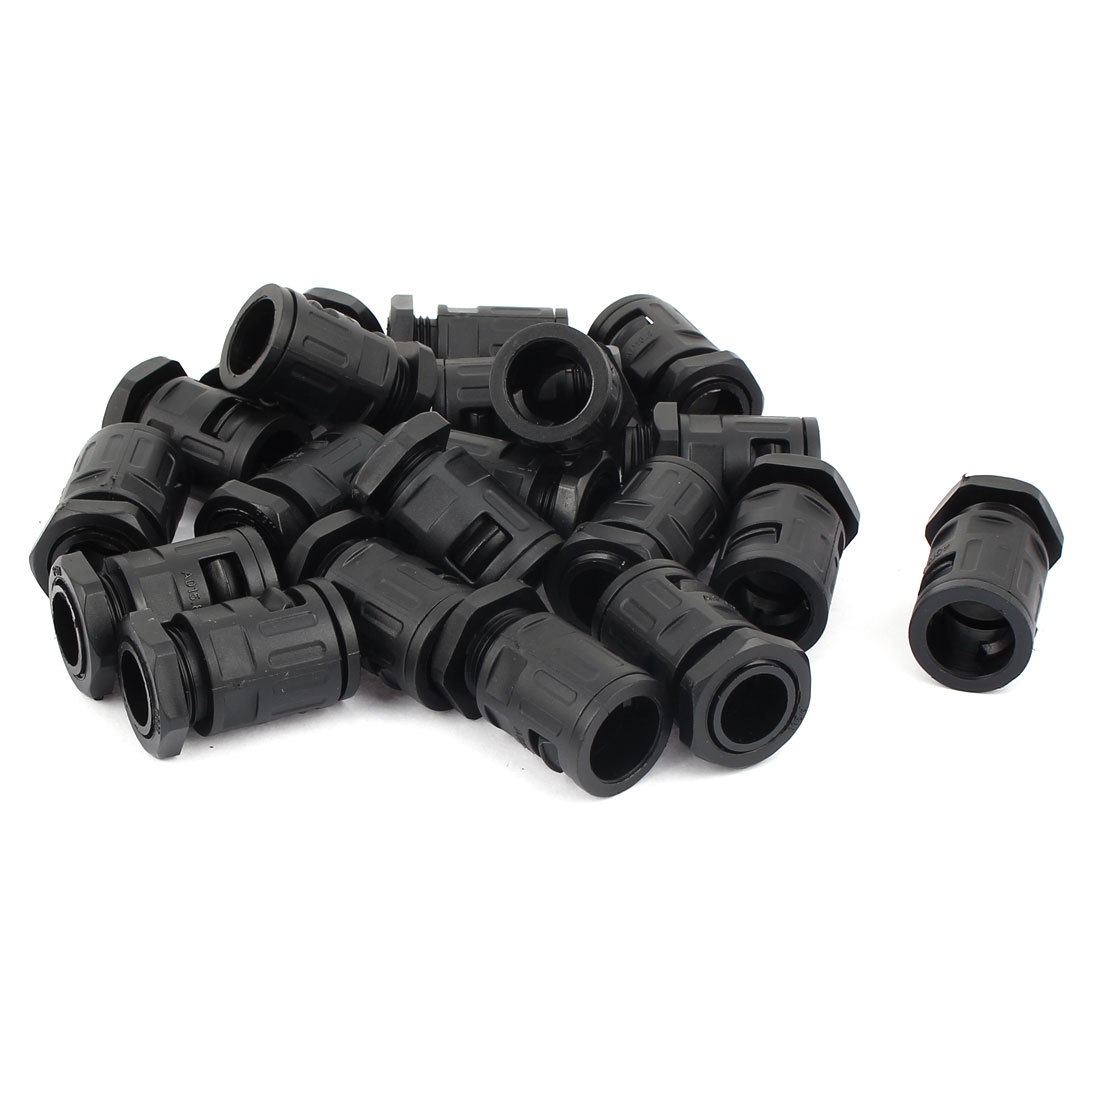 AD15.8 Plastic Flexible Corrugated Pipe Round Cable Hose Connector Black 20 Pcs